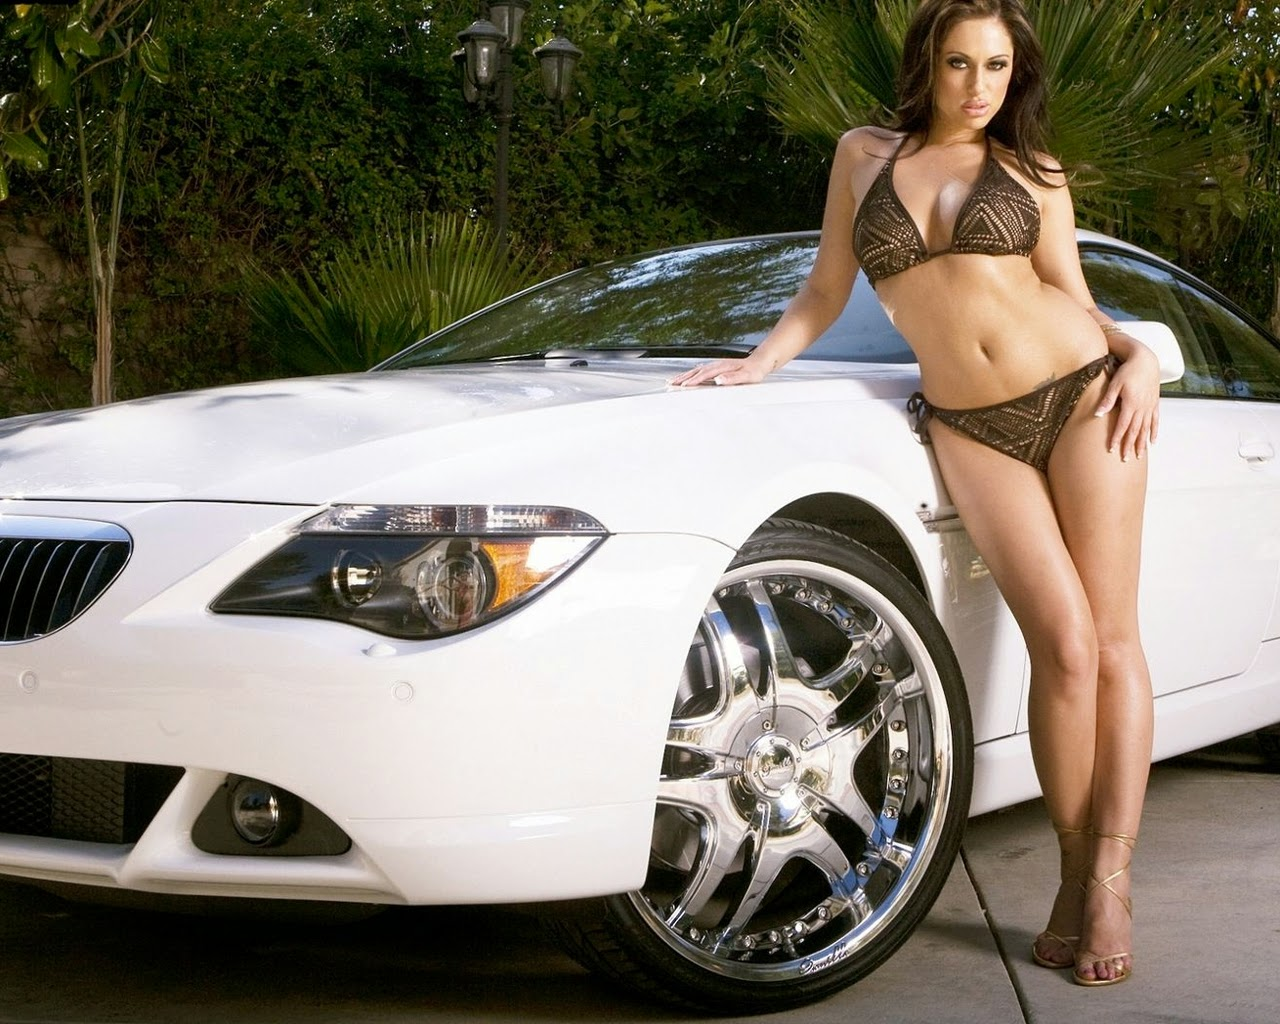 Sexy Girls And Cars Wallpapers Hd Part 6 O 1 Wallpaper